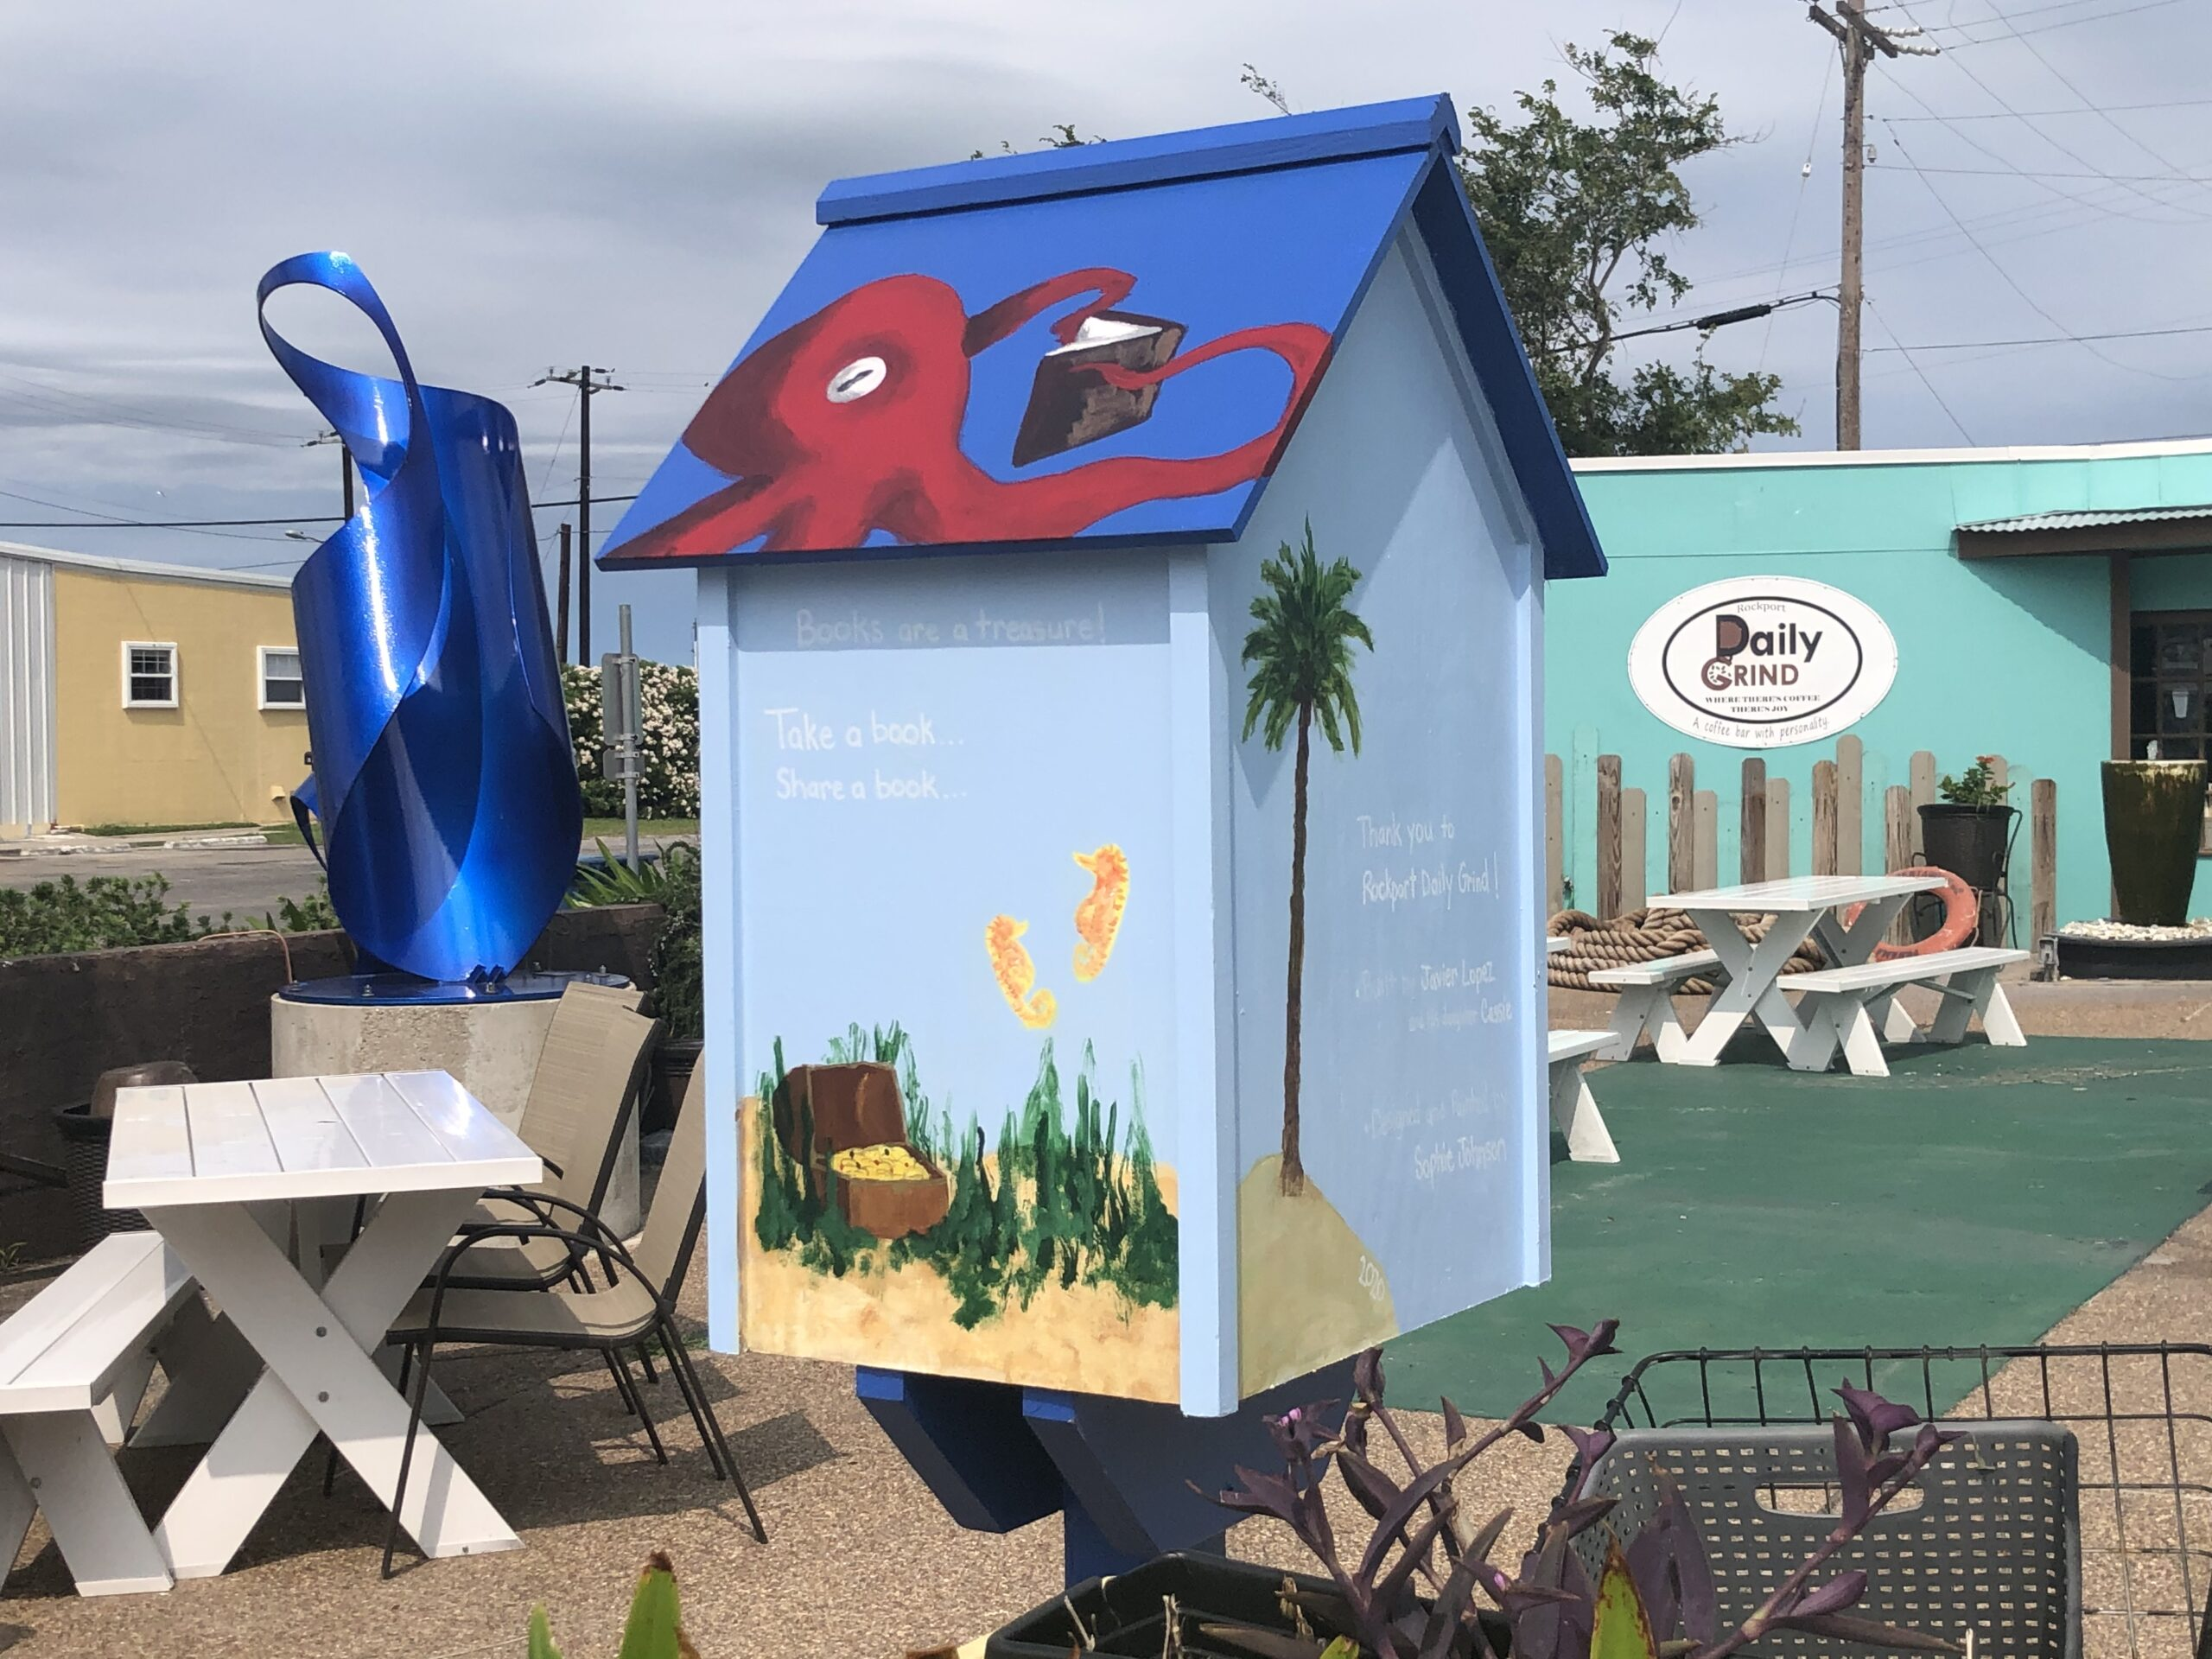 Rockport Daily Grind – Little Free Library